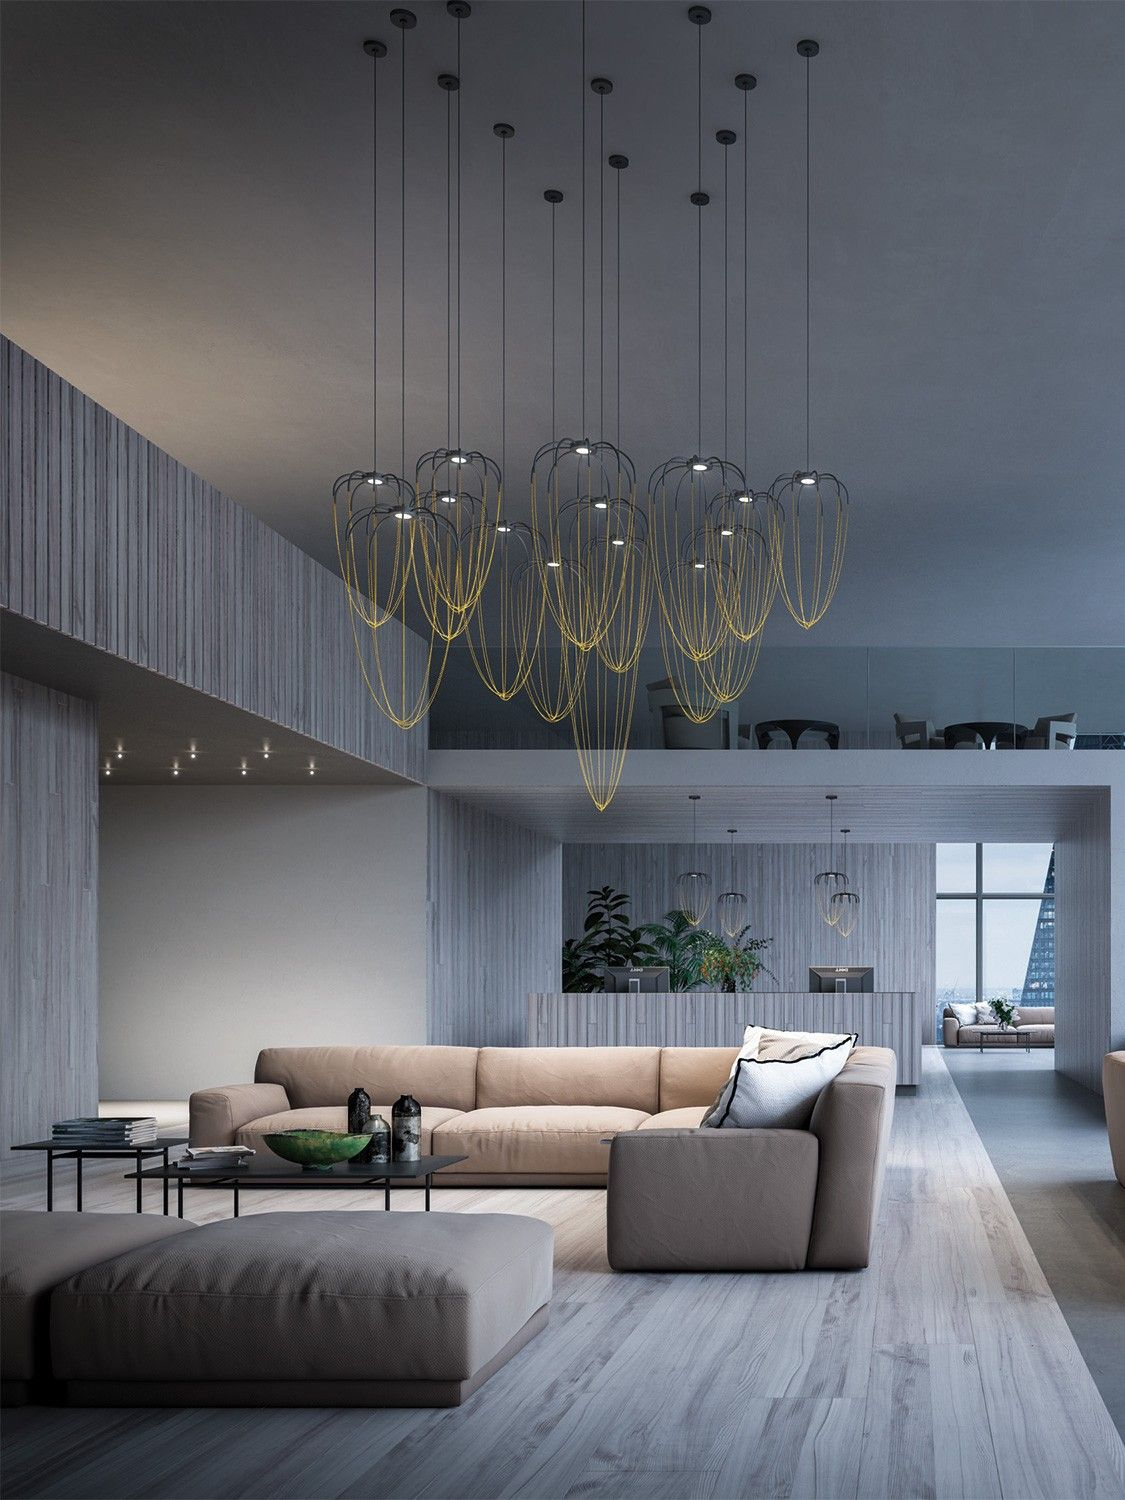 Contemporary light fixtures inspired by architectural design 4 contemporary light fixtures inspired by architectural design 4